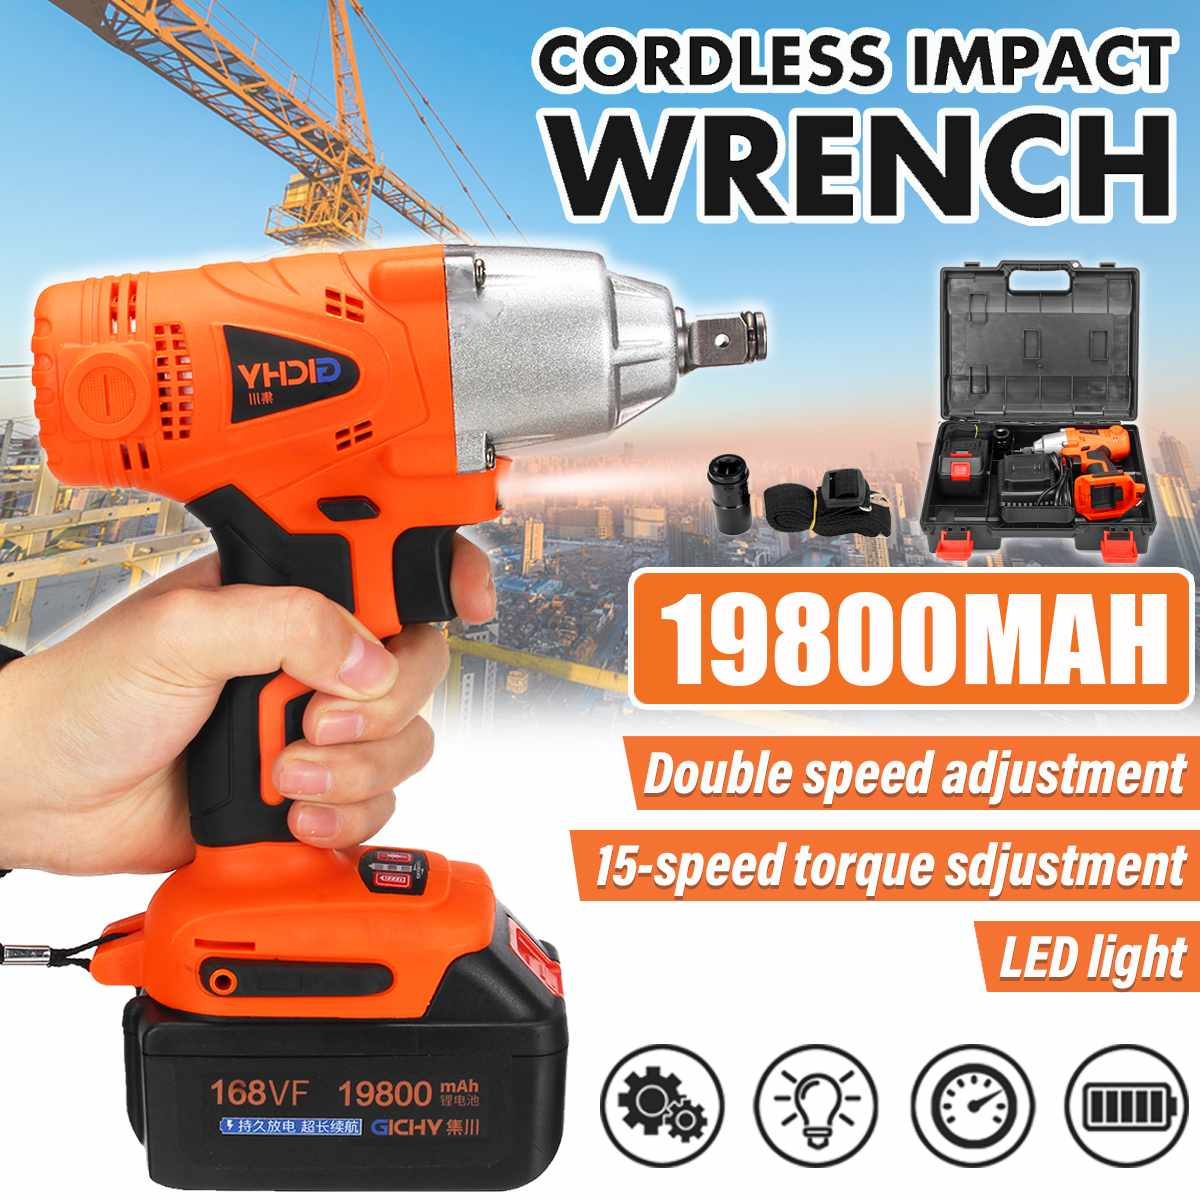 3 Powerful Models Brushless Cordless Electric Impact Wrench Socket Lituium Battery Car Tire Installation Changing Tools3 Powerful Models Brushless Cordless Electric Impact Wrench Socket Lituium Battery Car Tire Installation Changing Tools